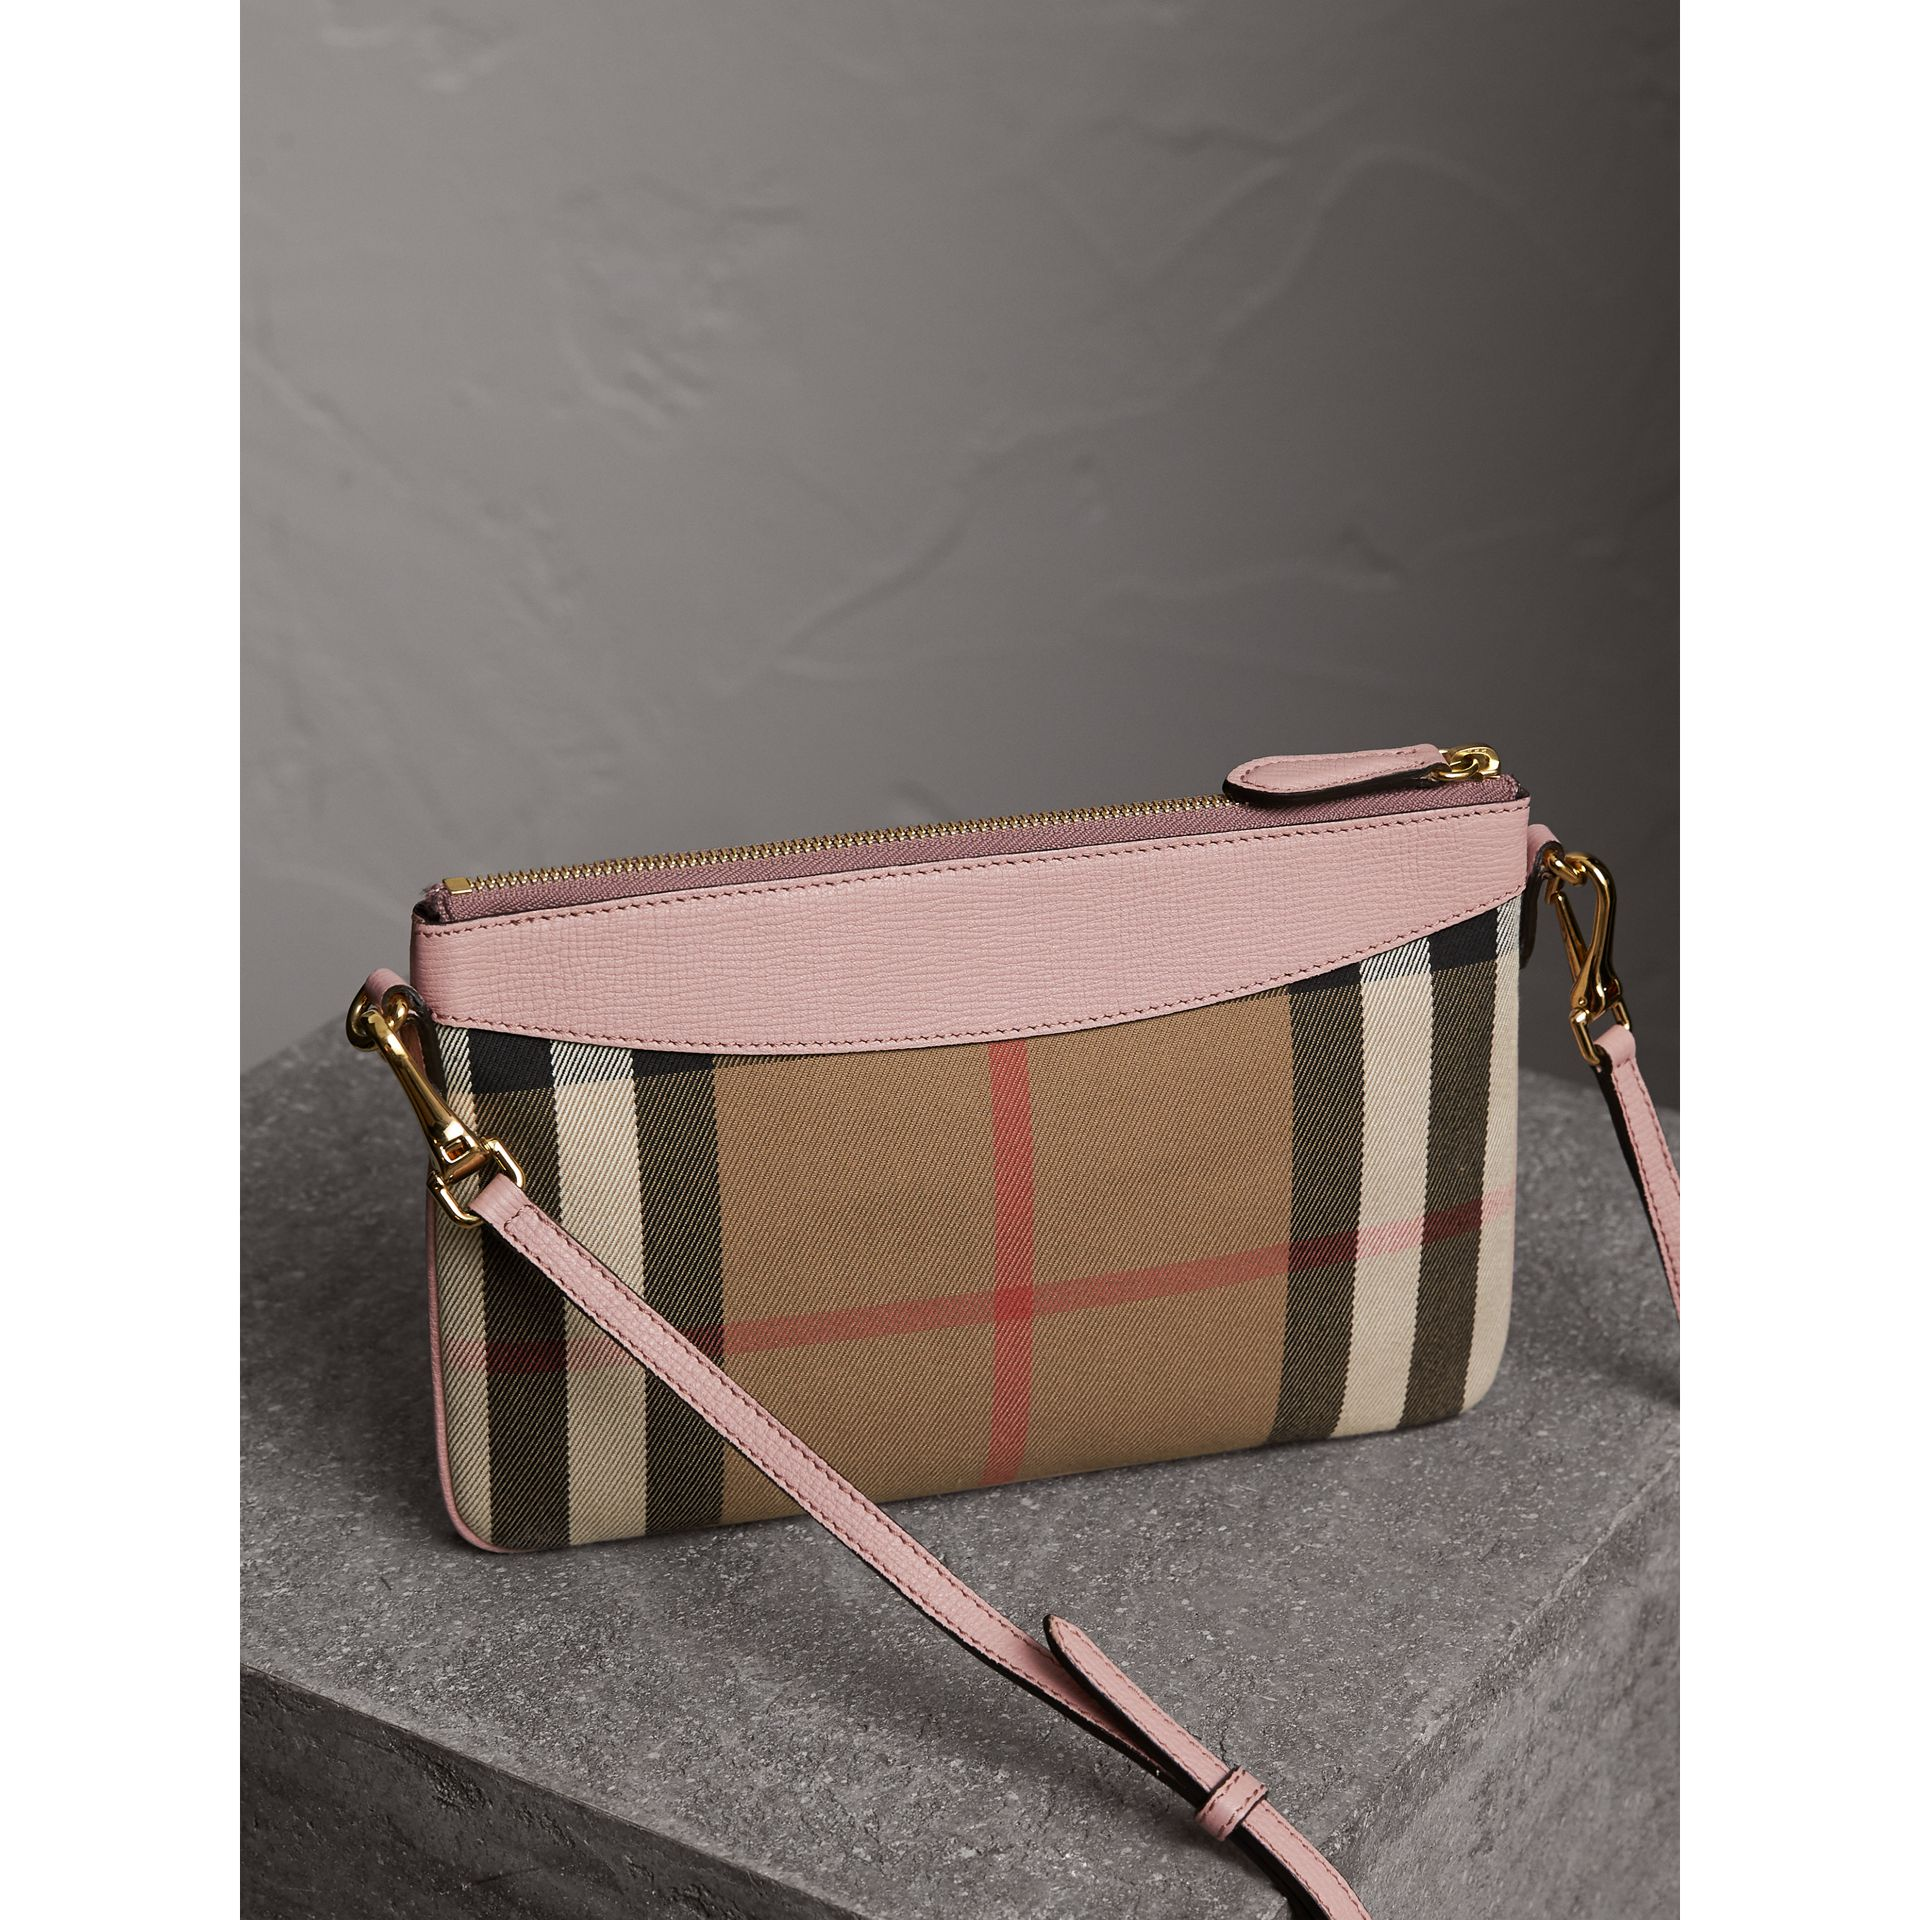 House Check and Leather Clutch Bag in Pale Orchid - Women | Burberry - gallery image 4